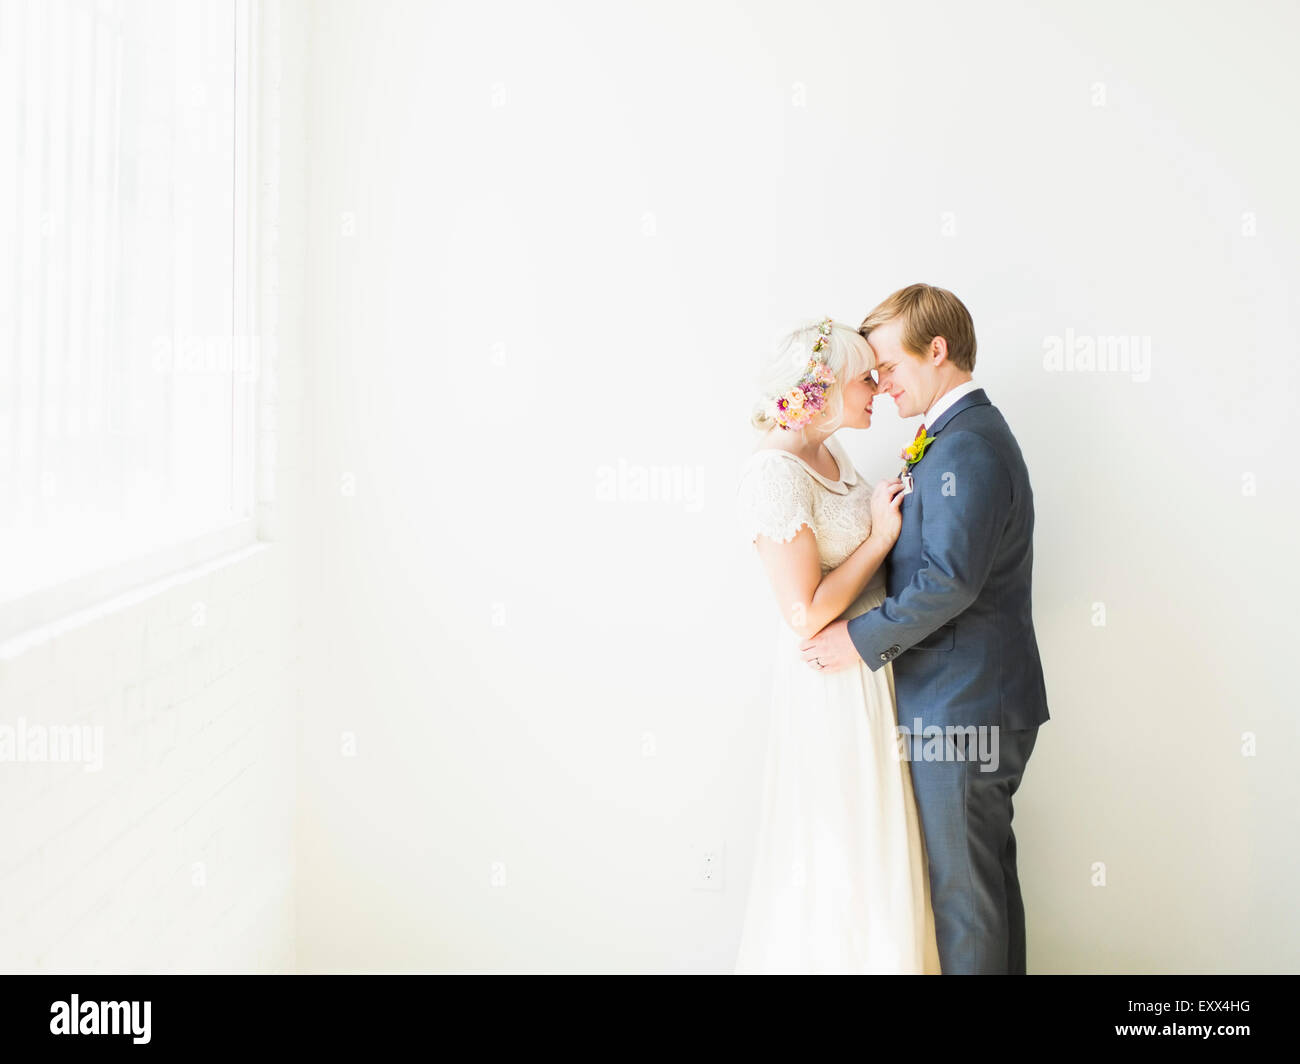 Newlywed couple embracing - Stock Image